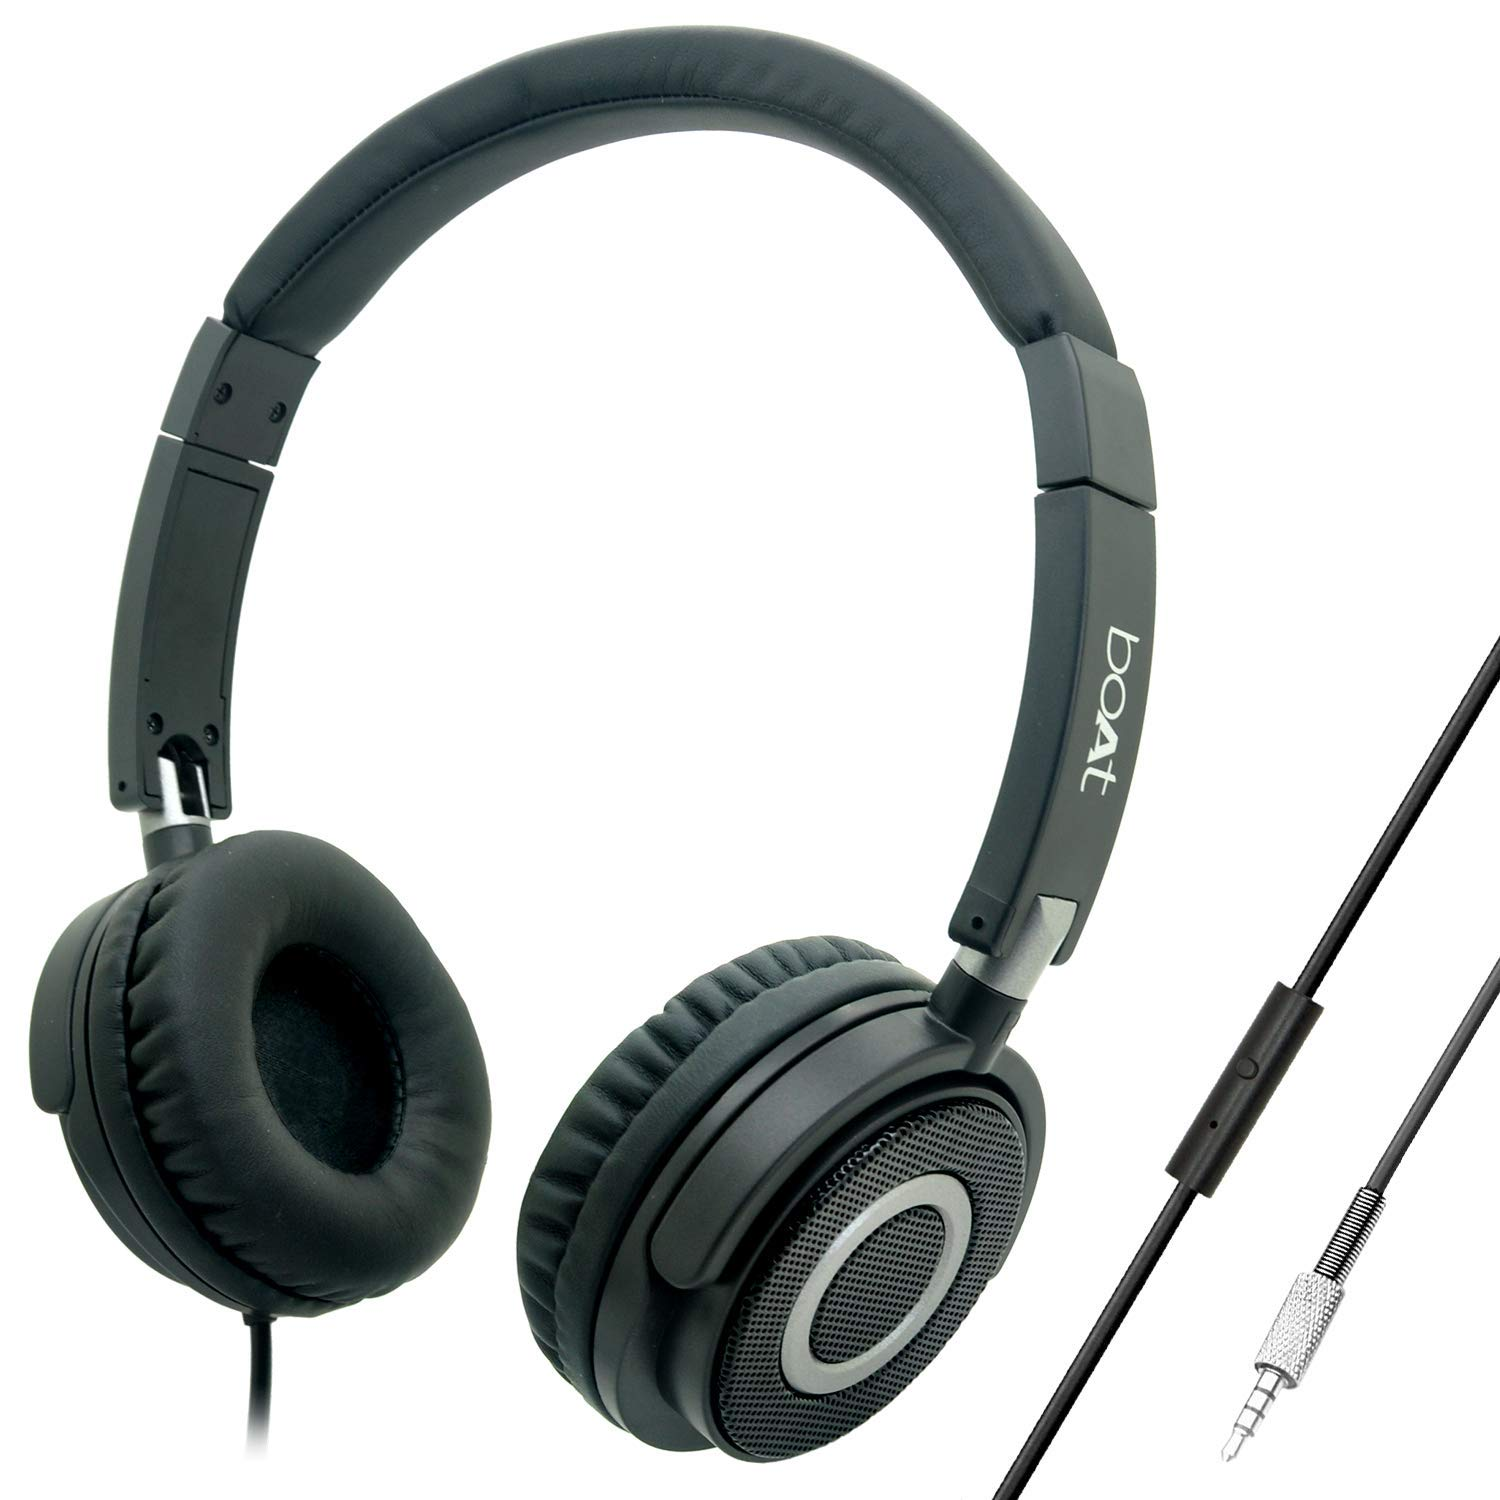 boAt Bassheads 900 On Ear Wired Headphones